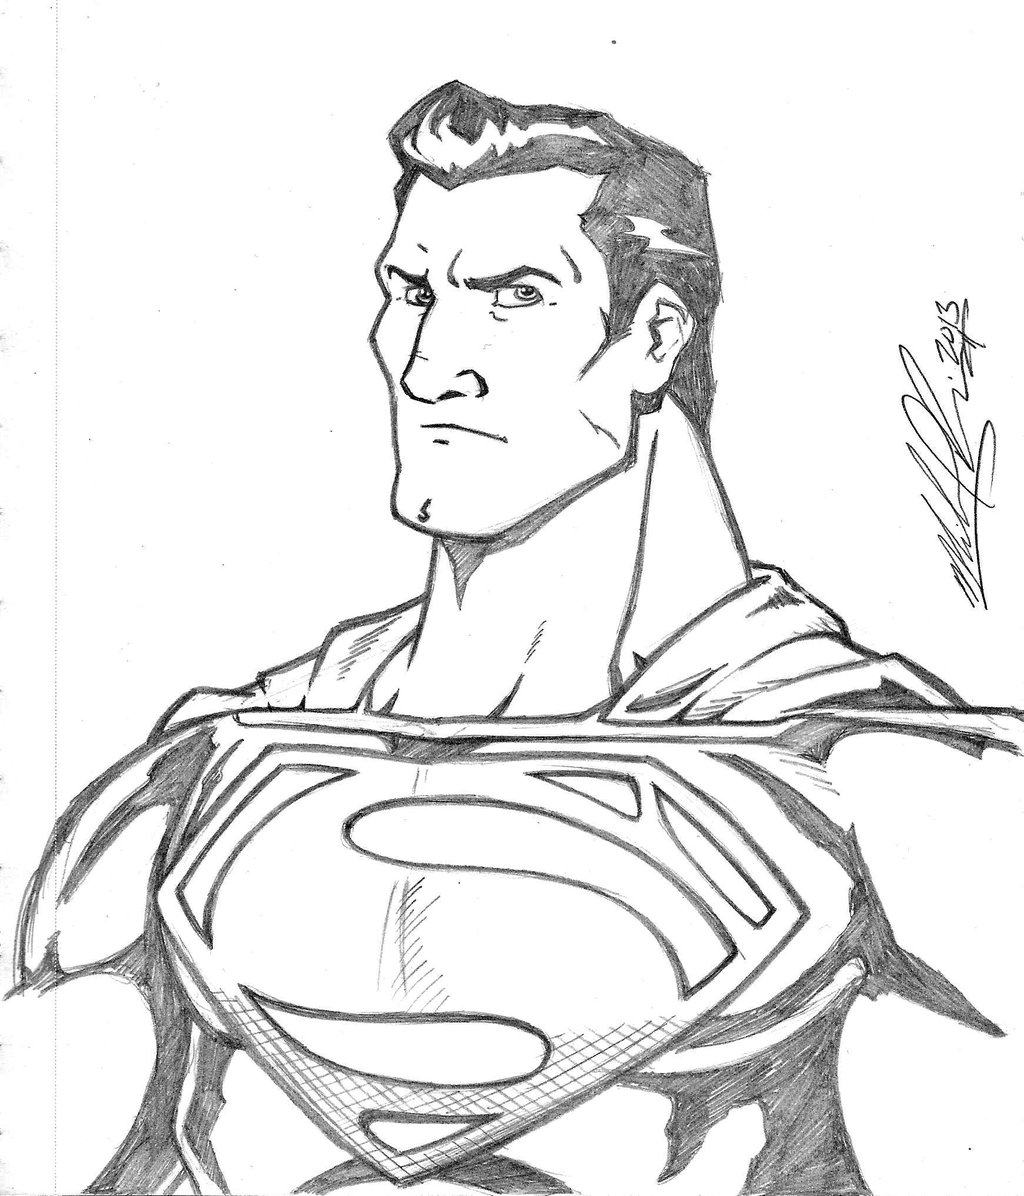 1024x1196 Man Of Steel Pencil Sketch By Mikereisner